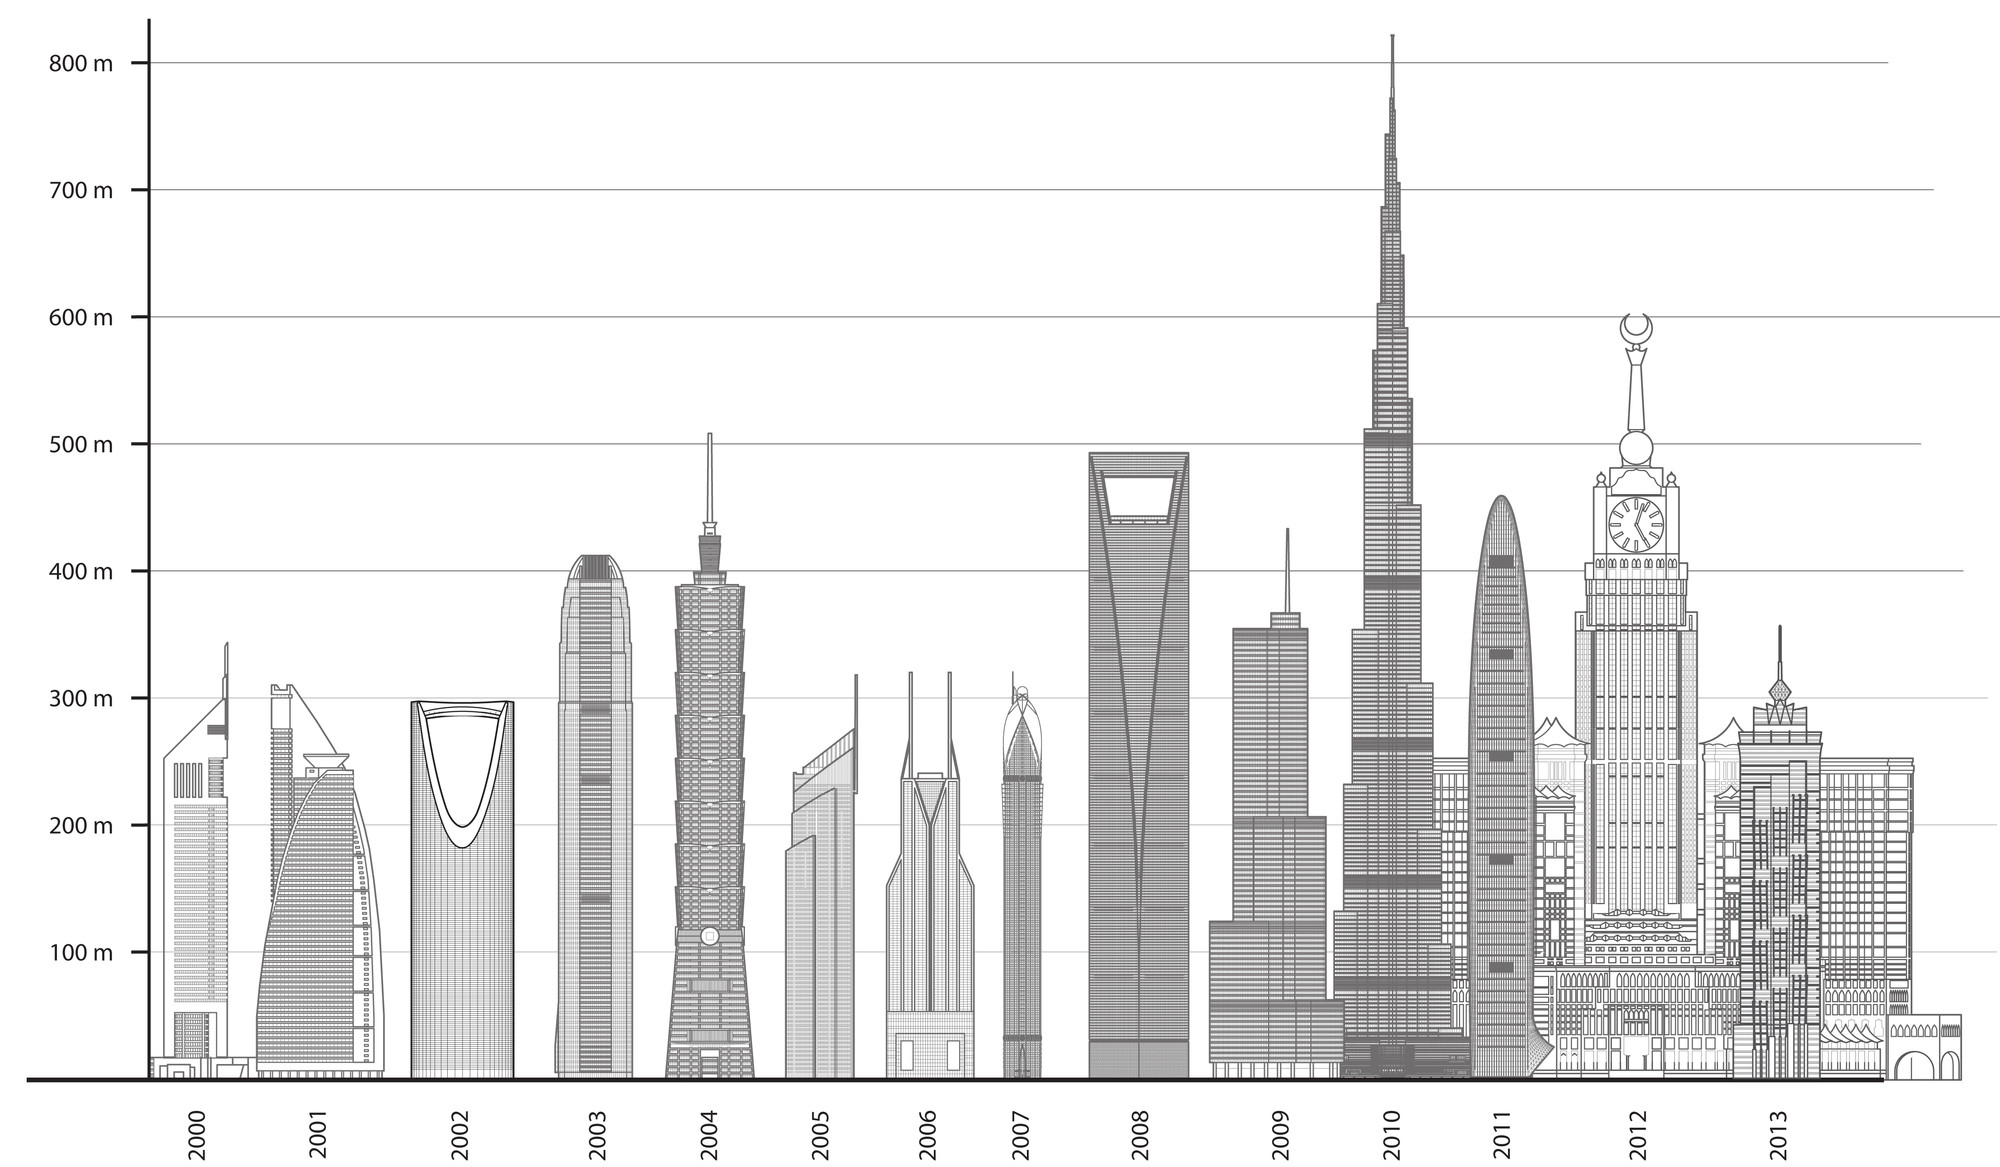 World's Tallest Buildings of 2013 Dominated by Asia, Courtesy of Council of Tall Buildings and Urban Habitats